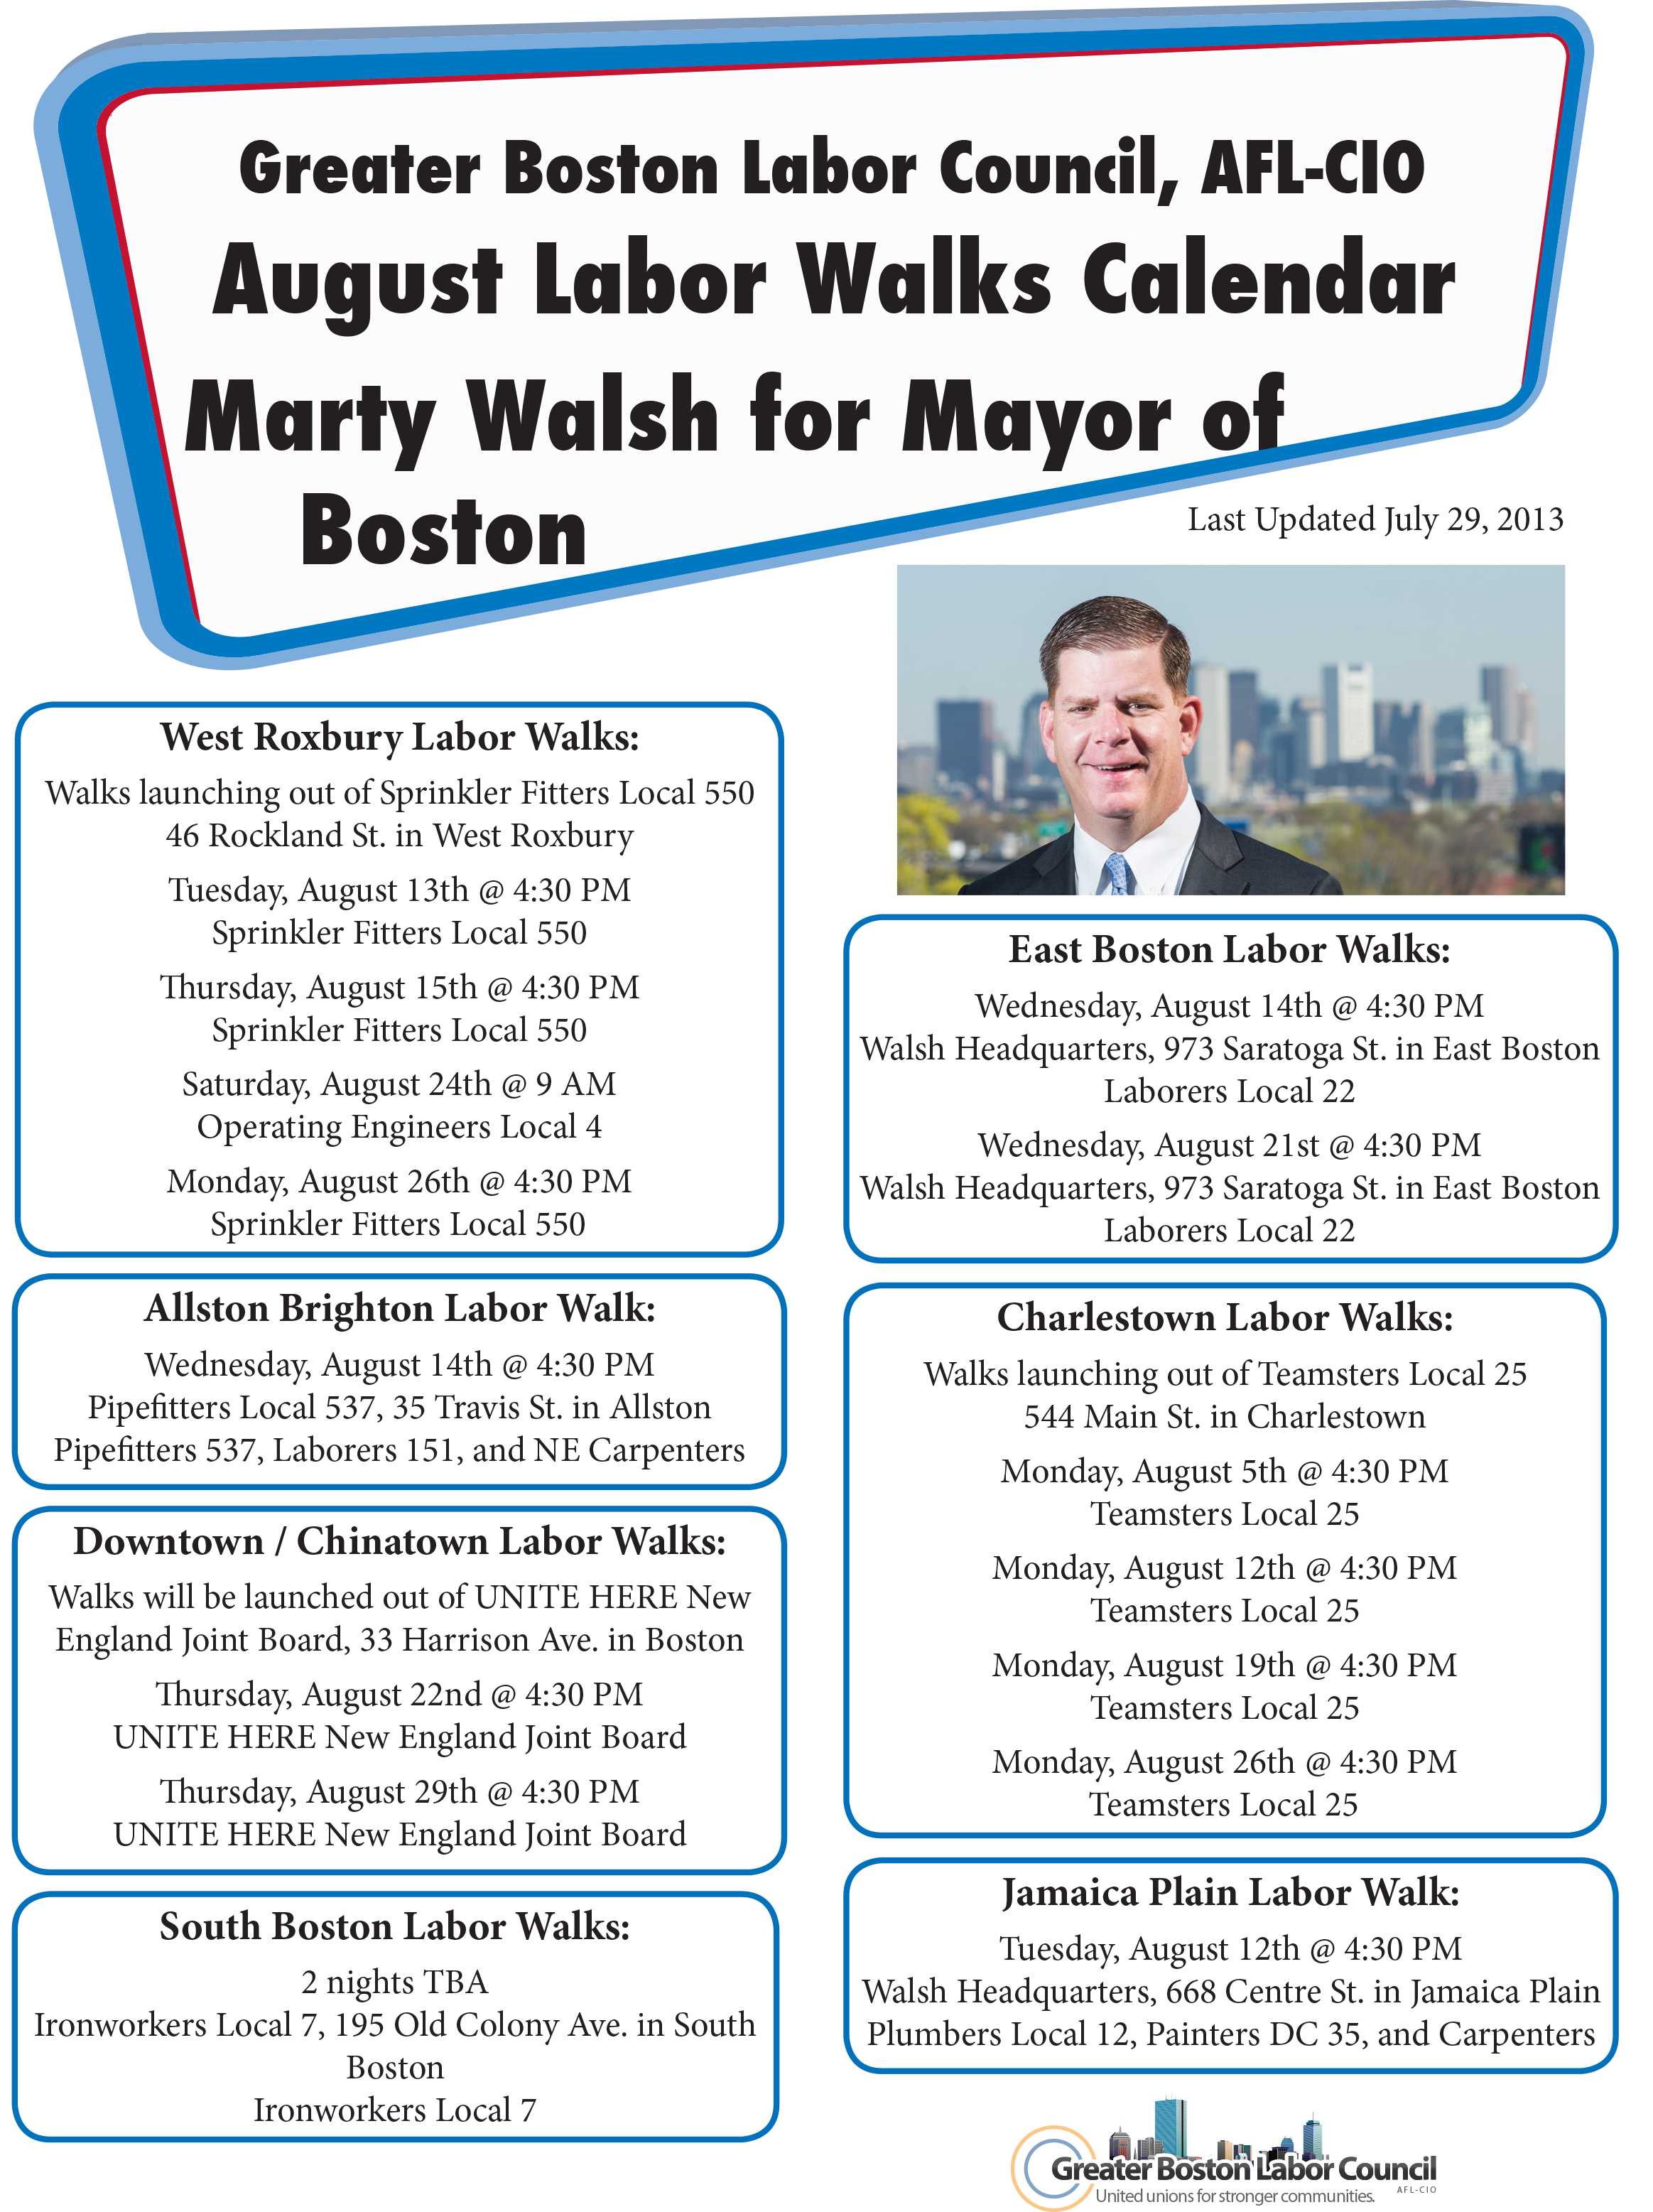 August-Labor-Walks-Calendar-Marty-Walsh1.png